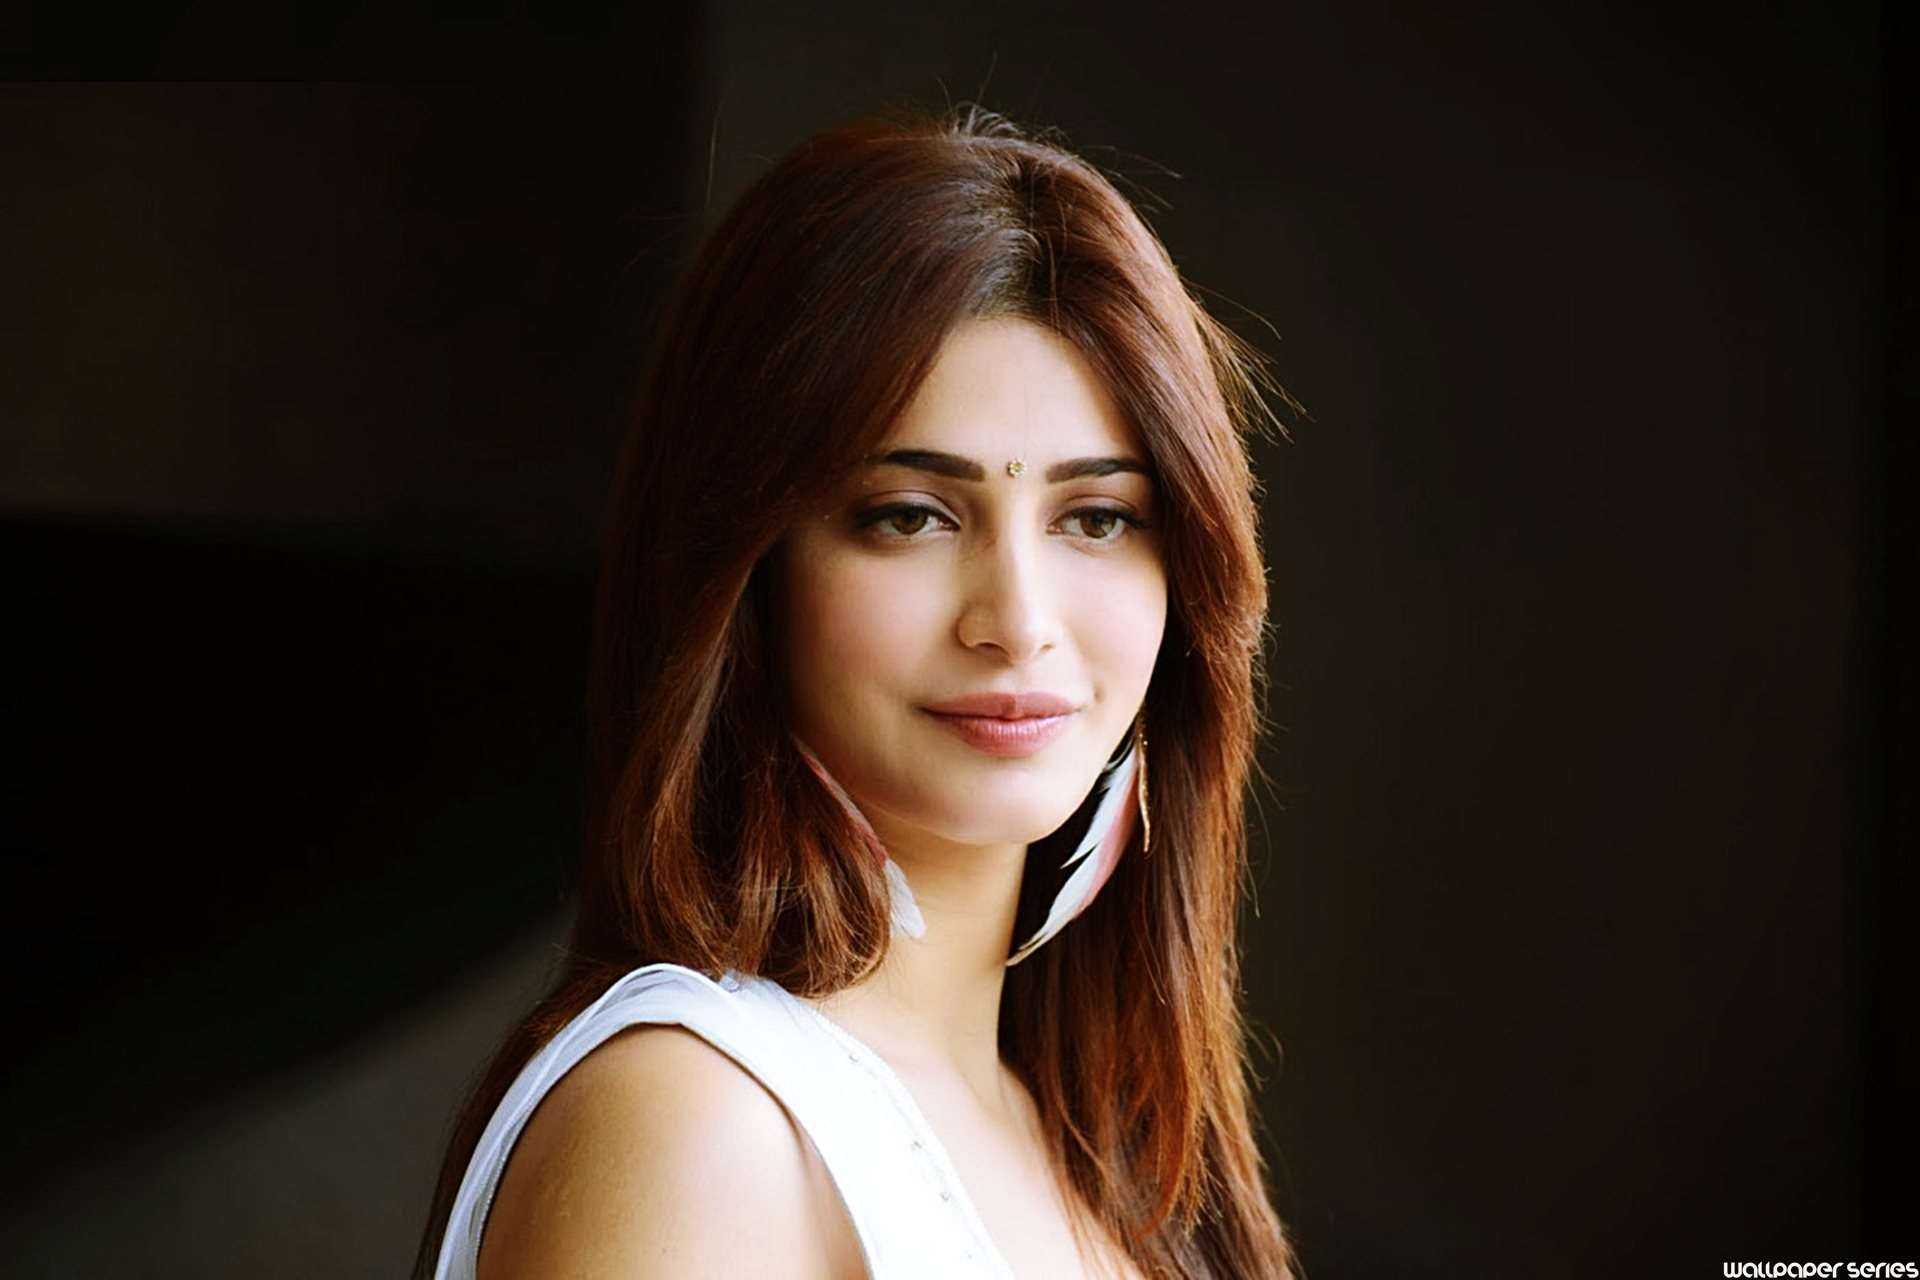 shruti hassan pics wallpapers 65 wallpapers � adorable